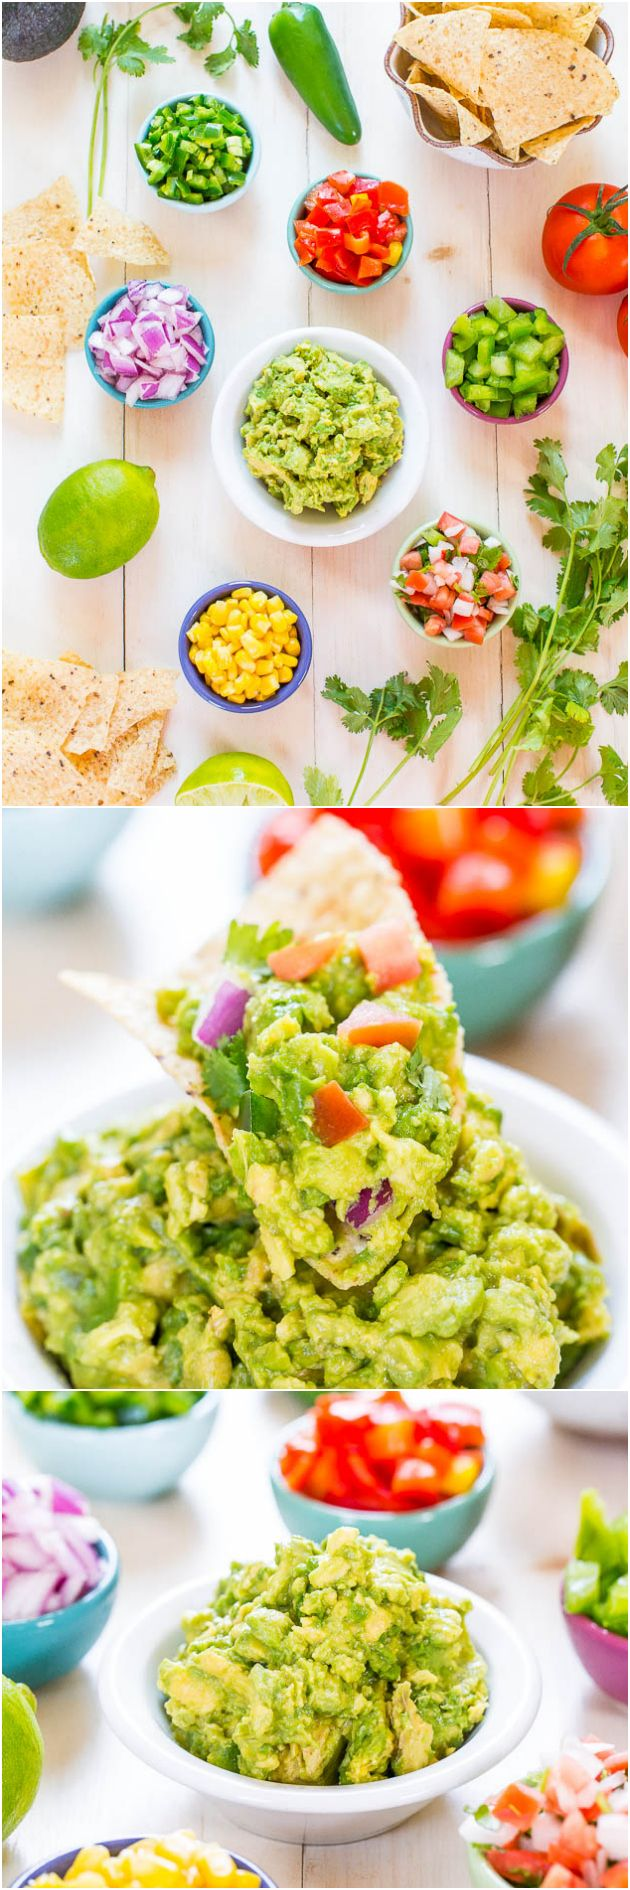 Do-It-Yourself Guacamole Bar makes a great party idea that everyone loves!